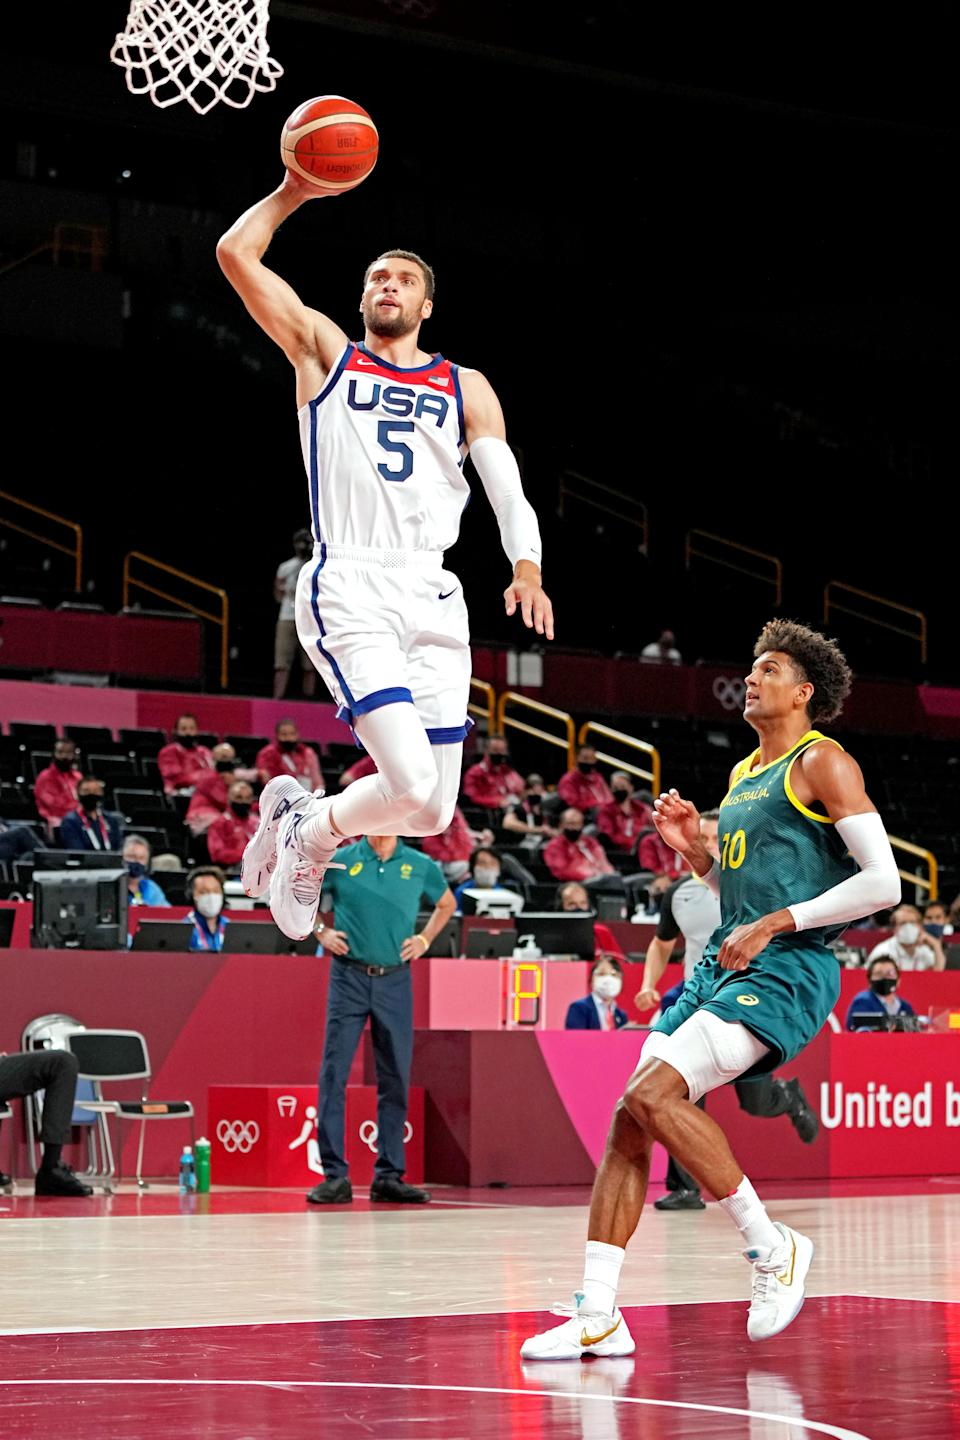 Zach Lavine dunks the ball as Matisse Thybulle pursues during the United States' win over Australia.